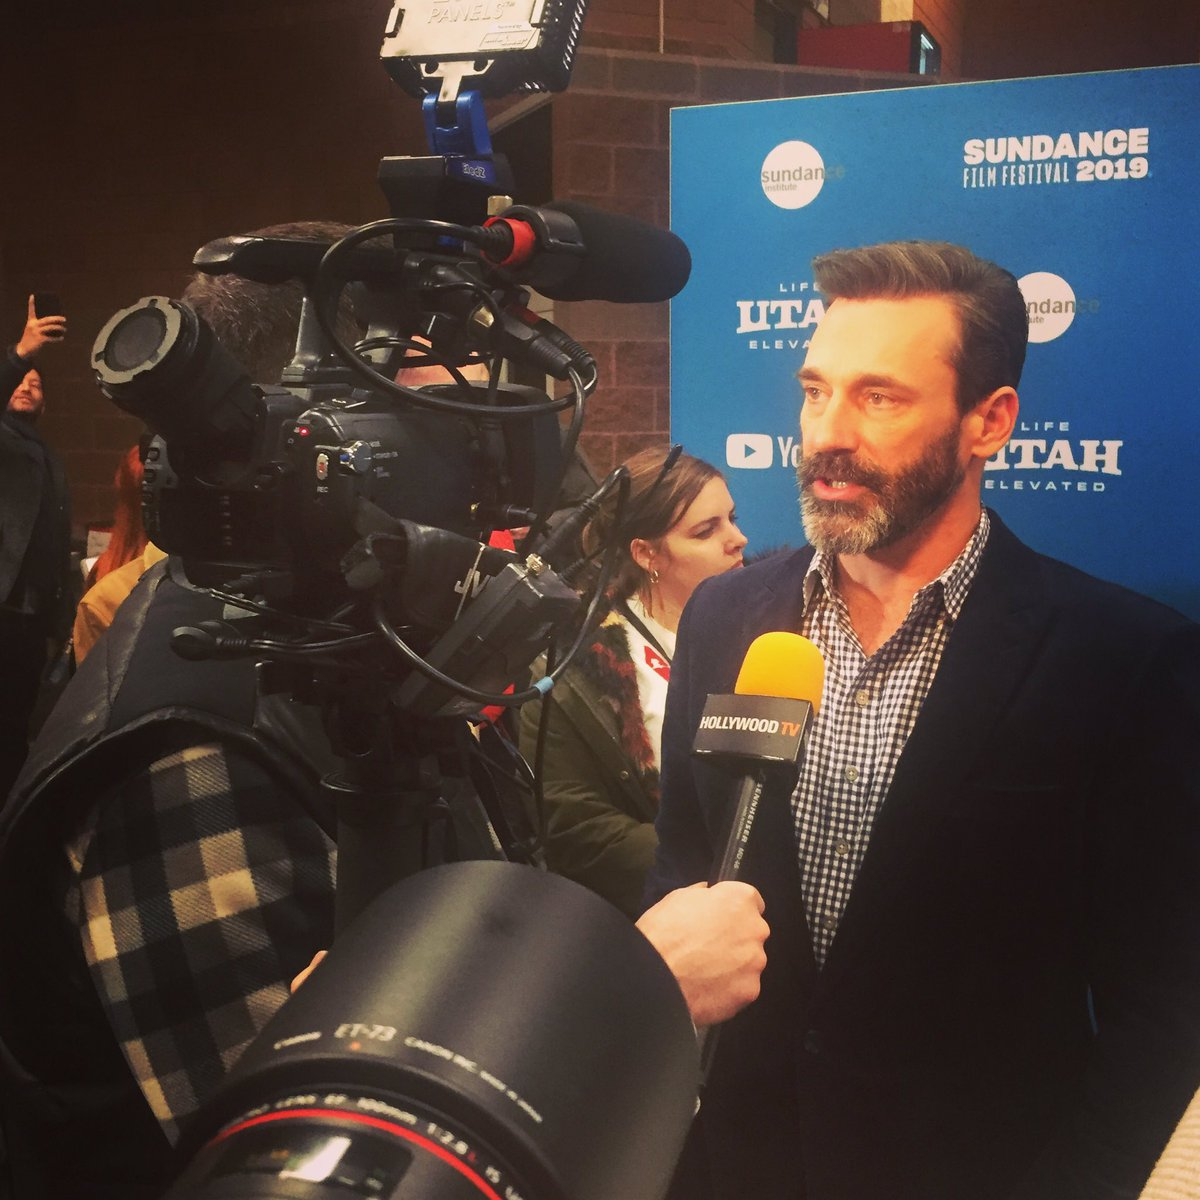 Jon Hamm at the #SundanceFilmFestival2019 for the premiere of The Report